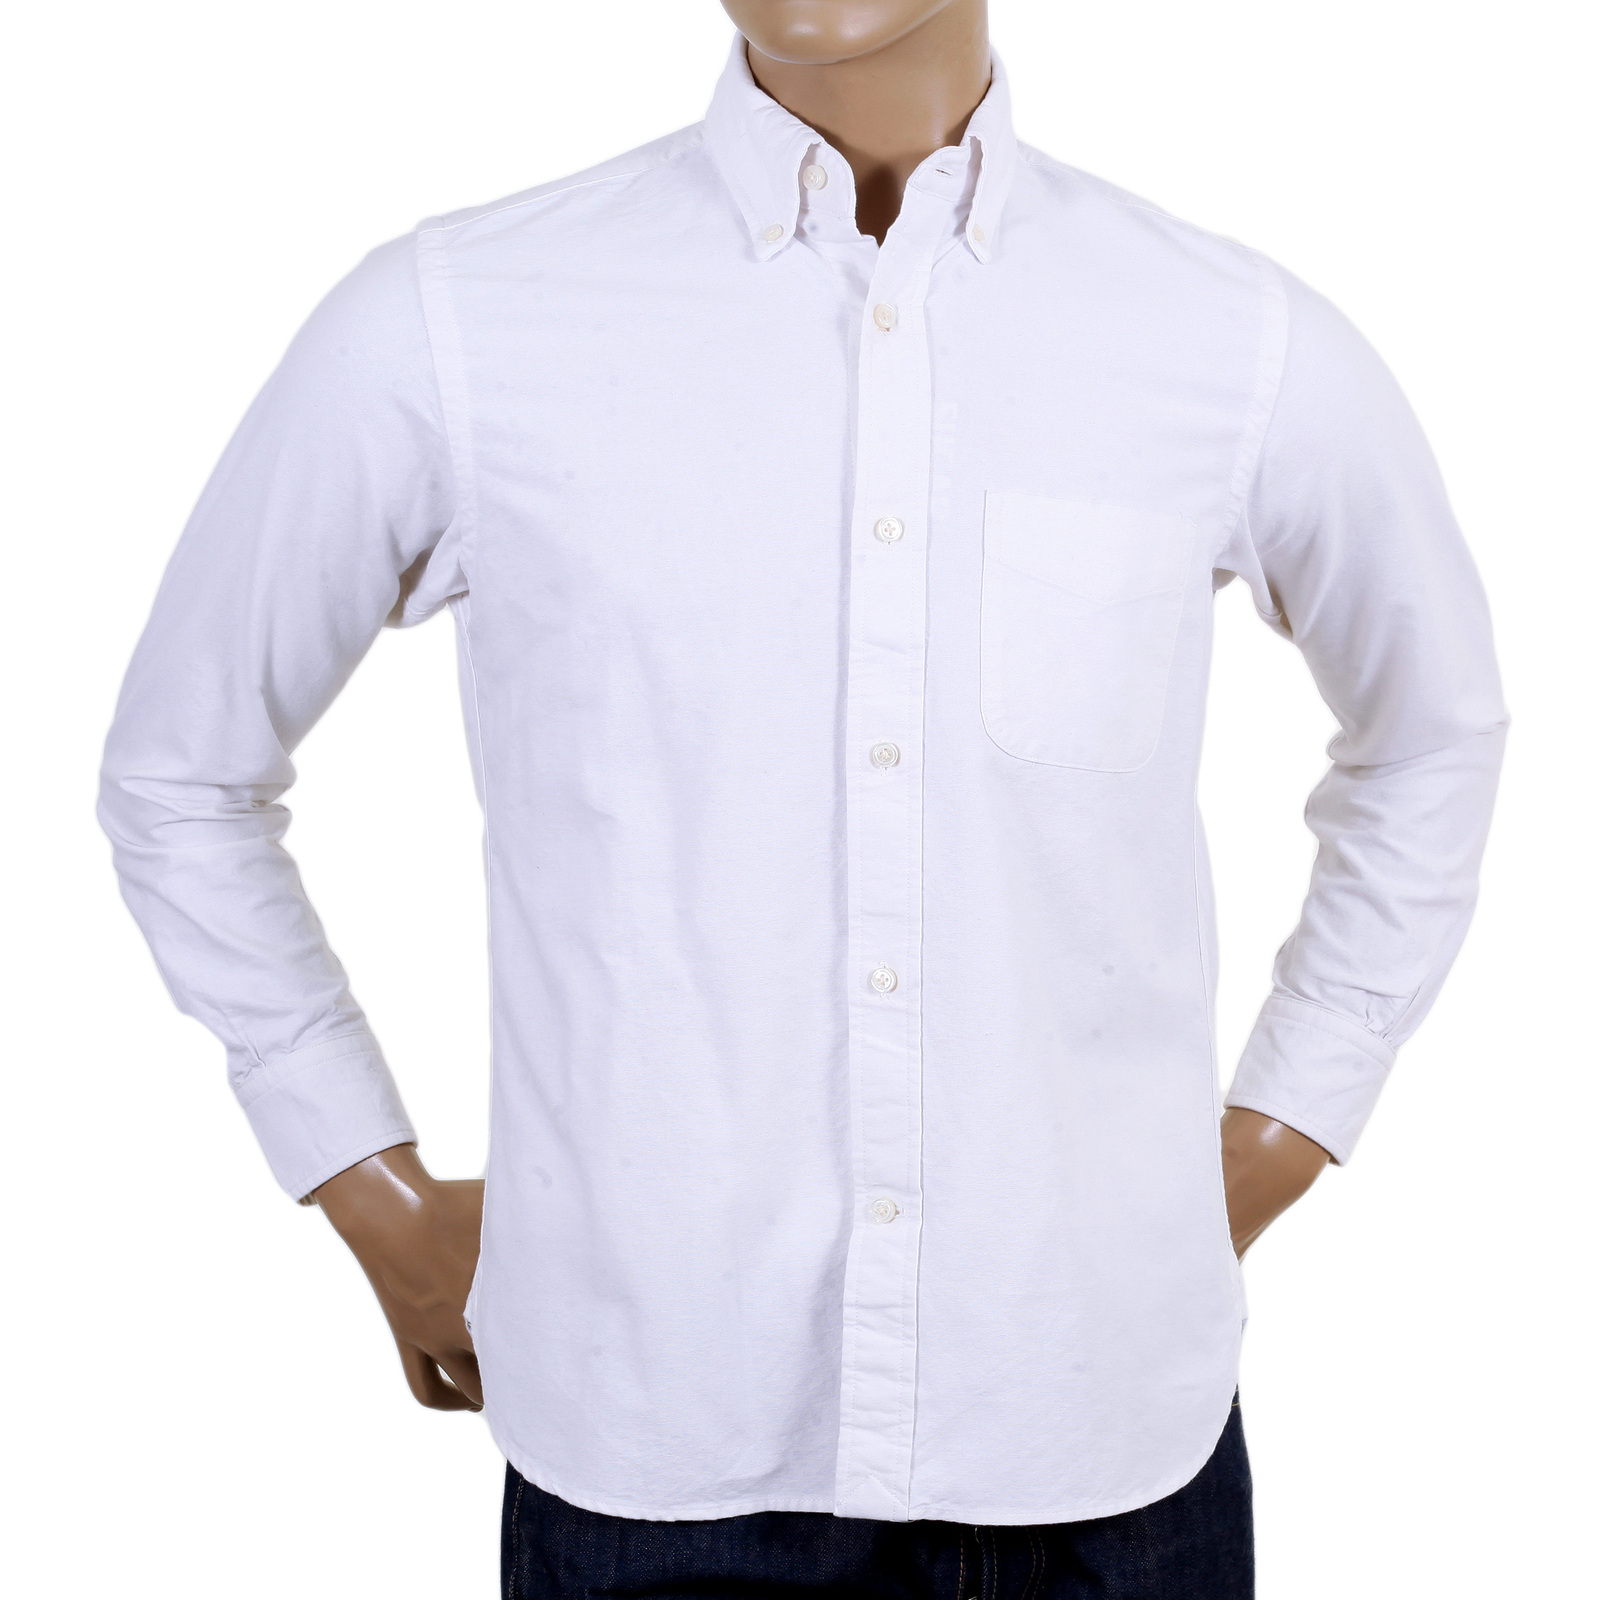 Armani Exchange slim fit chest logo oxford shirt in white. £ Armani Exchange slim fit chest logo oxford shirt in light blue. £ Armani Exchange flocked check shirt in navy. £ Barbour Ashwood slim fit button down oxford shirt in white. £ Fred Perry buttondown oxford shirt in blue.